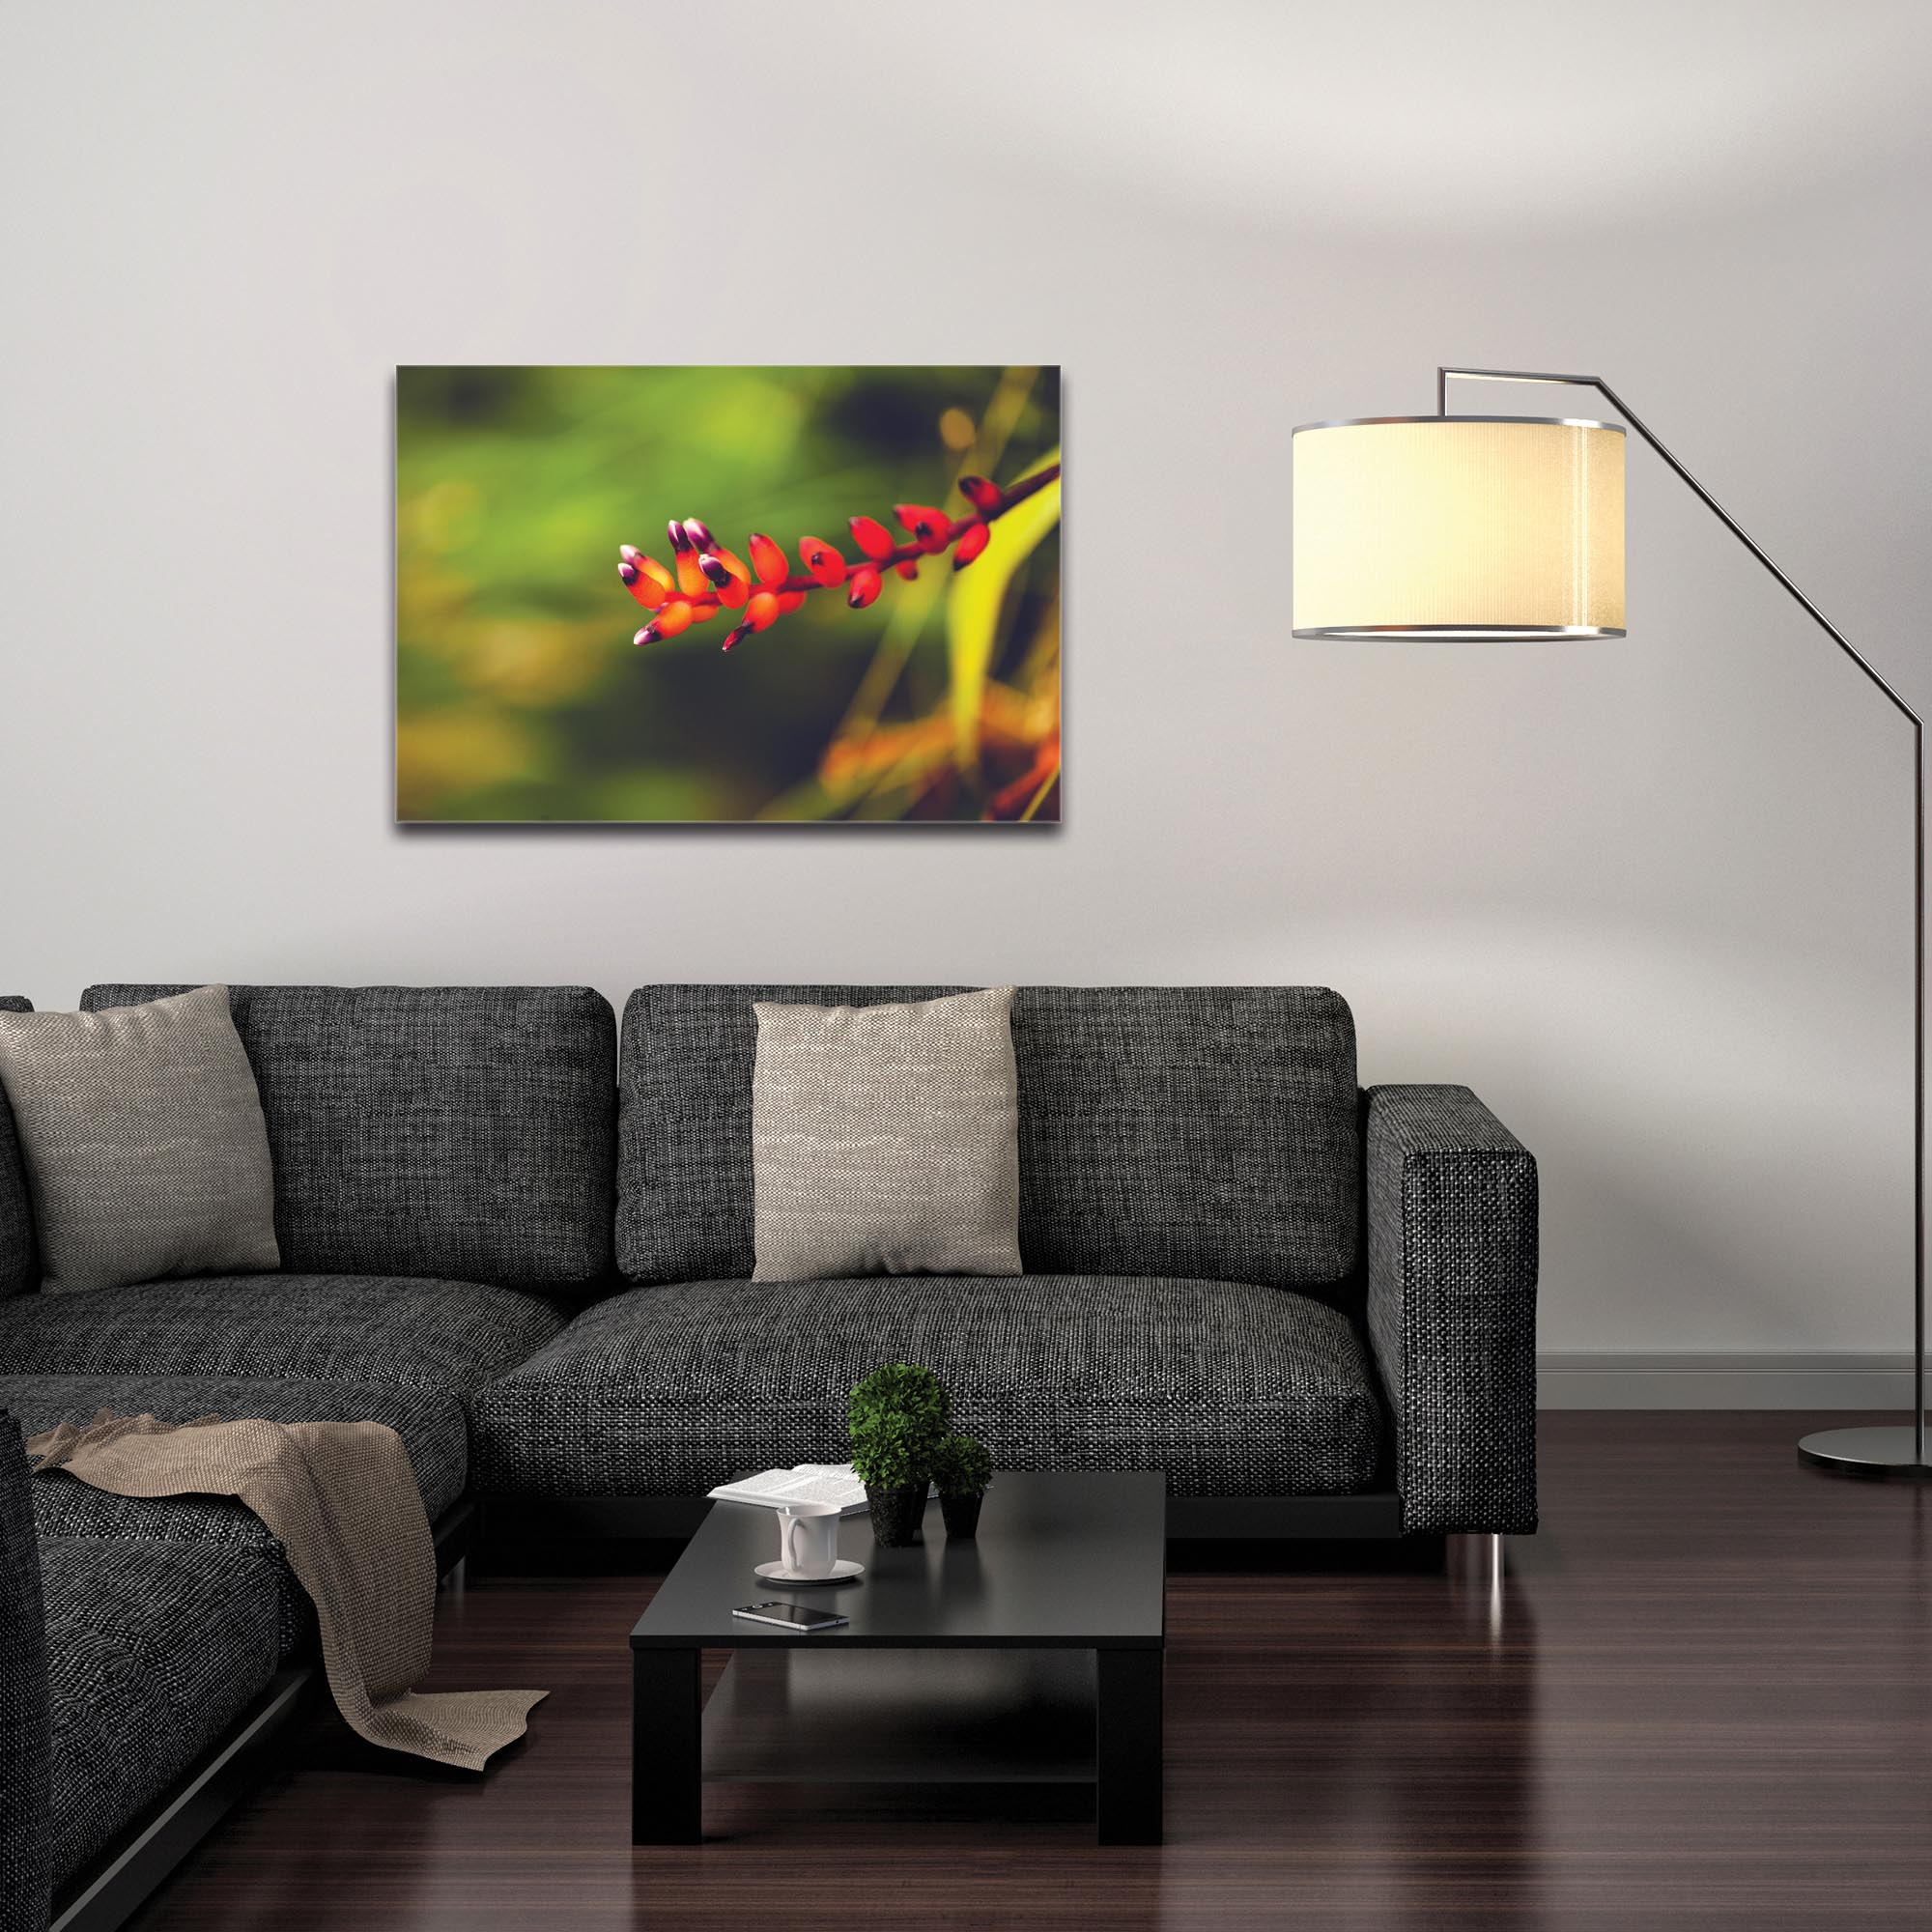 Nature Photography 'Ready to Bloom' - Flower Blossom Art on Metal or Plexiglass - Image 3